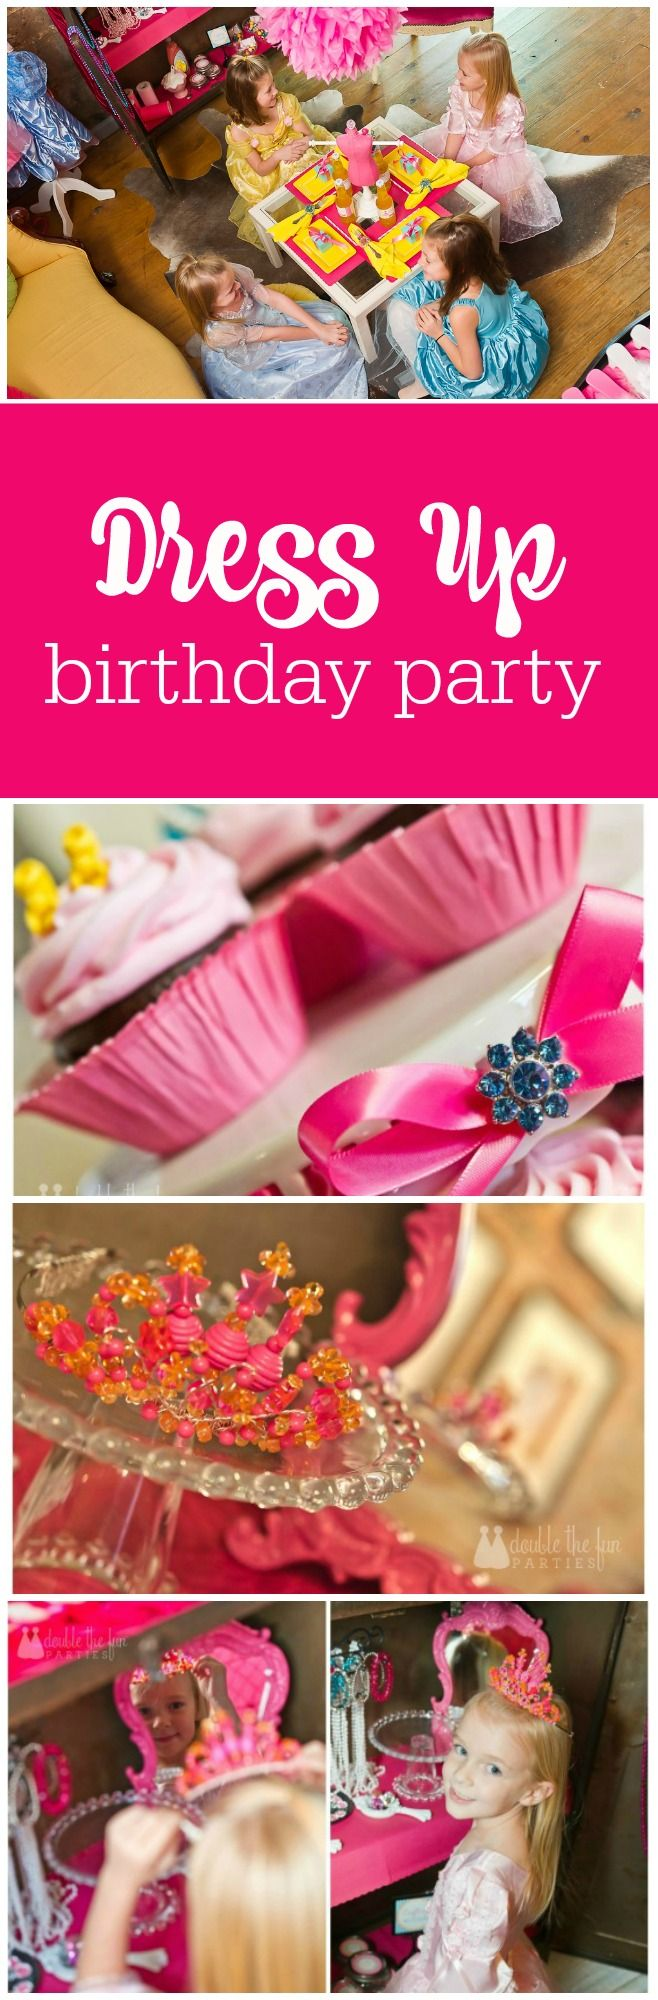 233 best Birthday Party Themes images on Pinterest | Birthdays ...